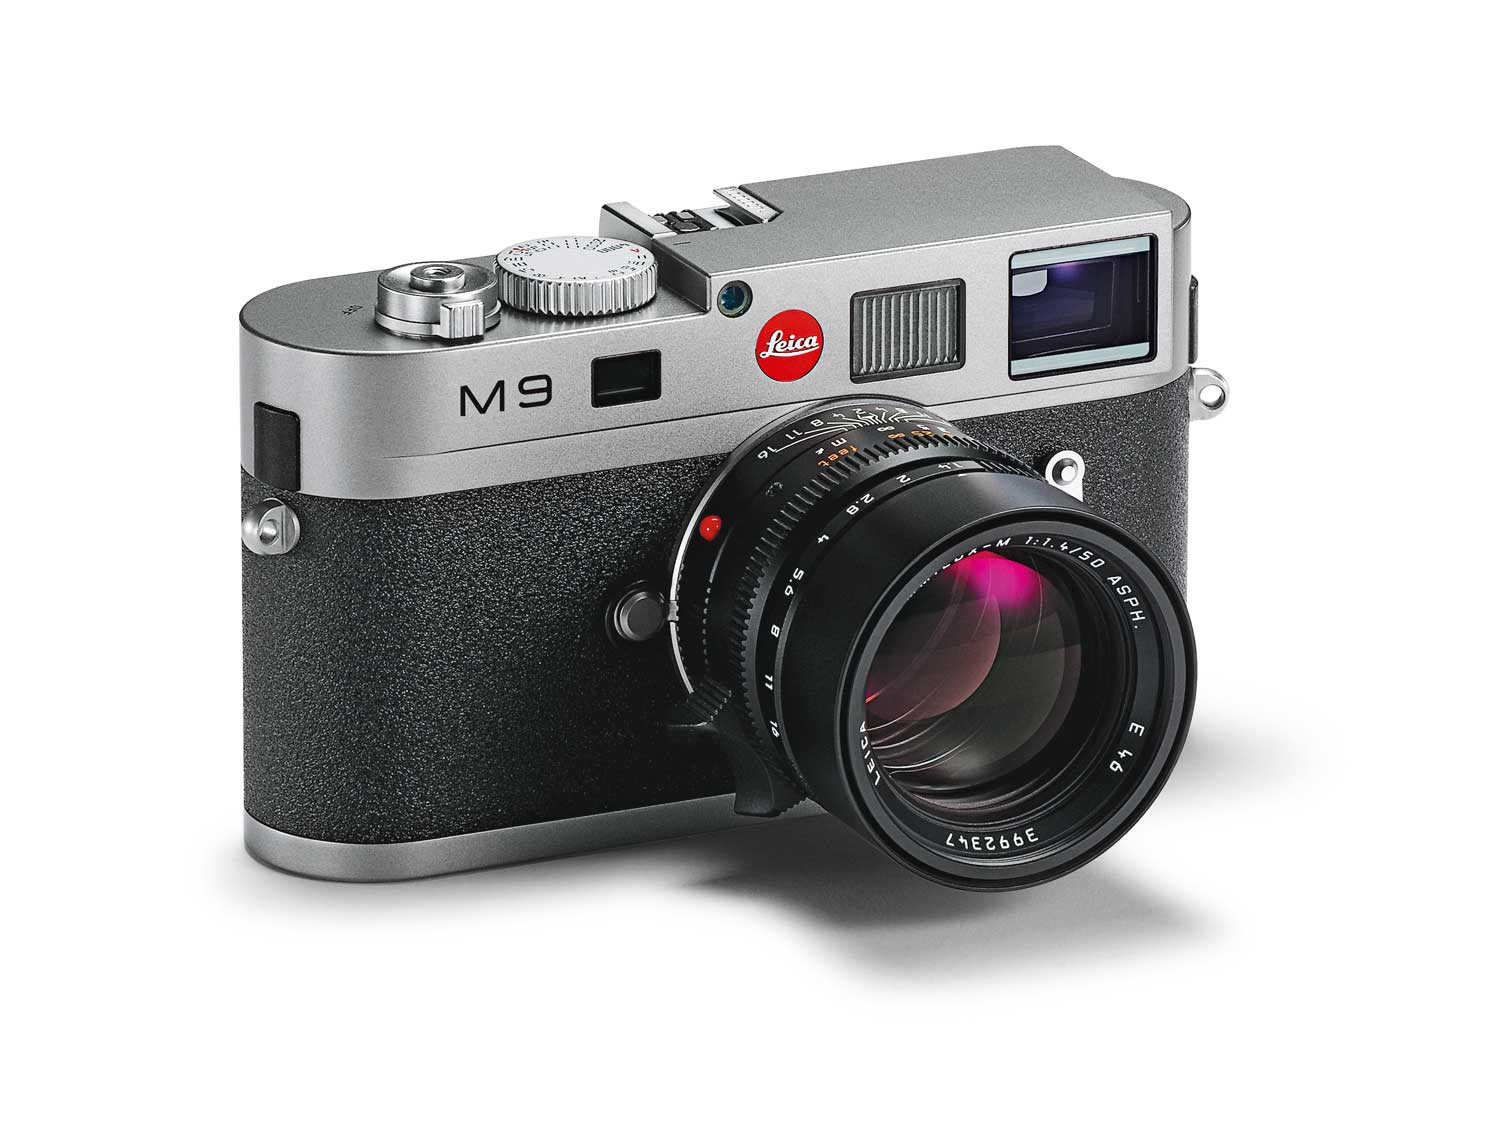 Leica M9 range finder camera